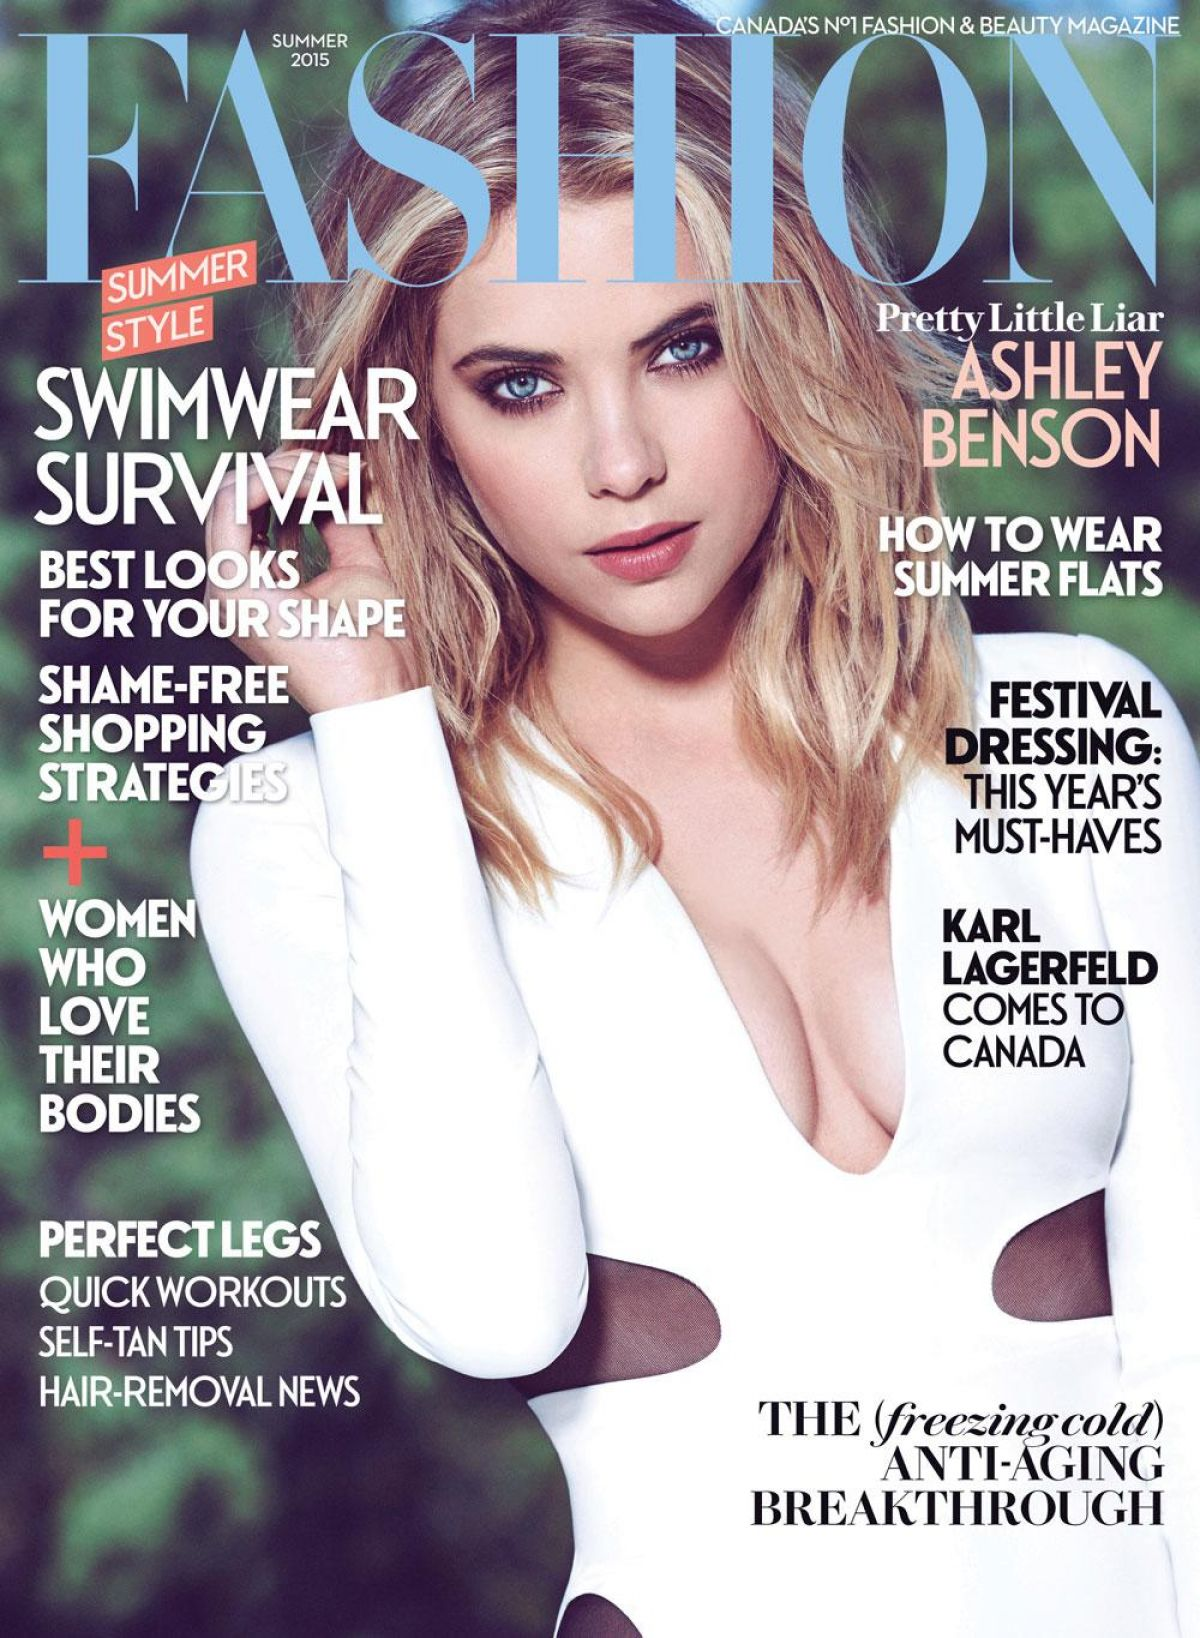 Ashley Benson In Fashion Magazine Summer 2015 Issue